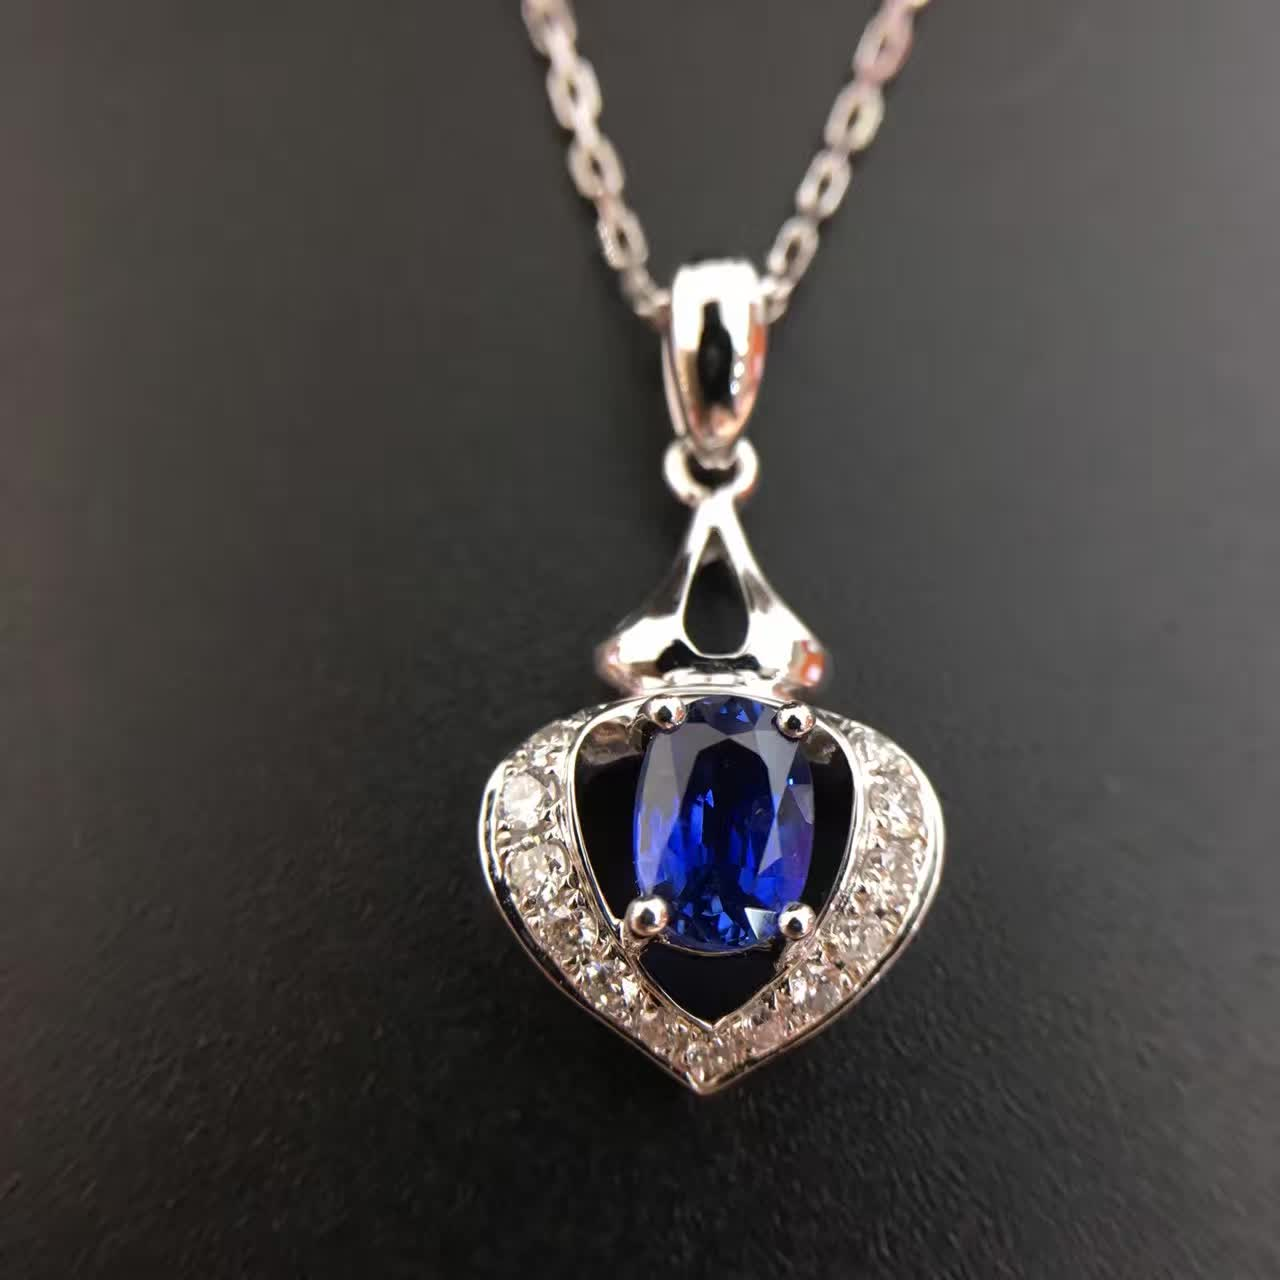 0 691ct 0 144ct 18K White Gold Natural Sapphire and Pendant font b Necklace b font